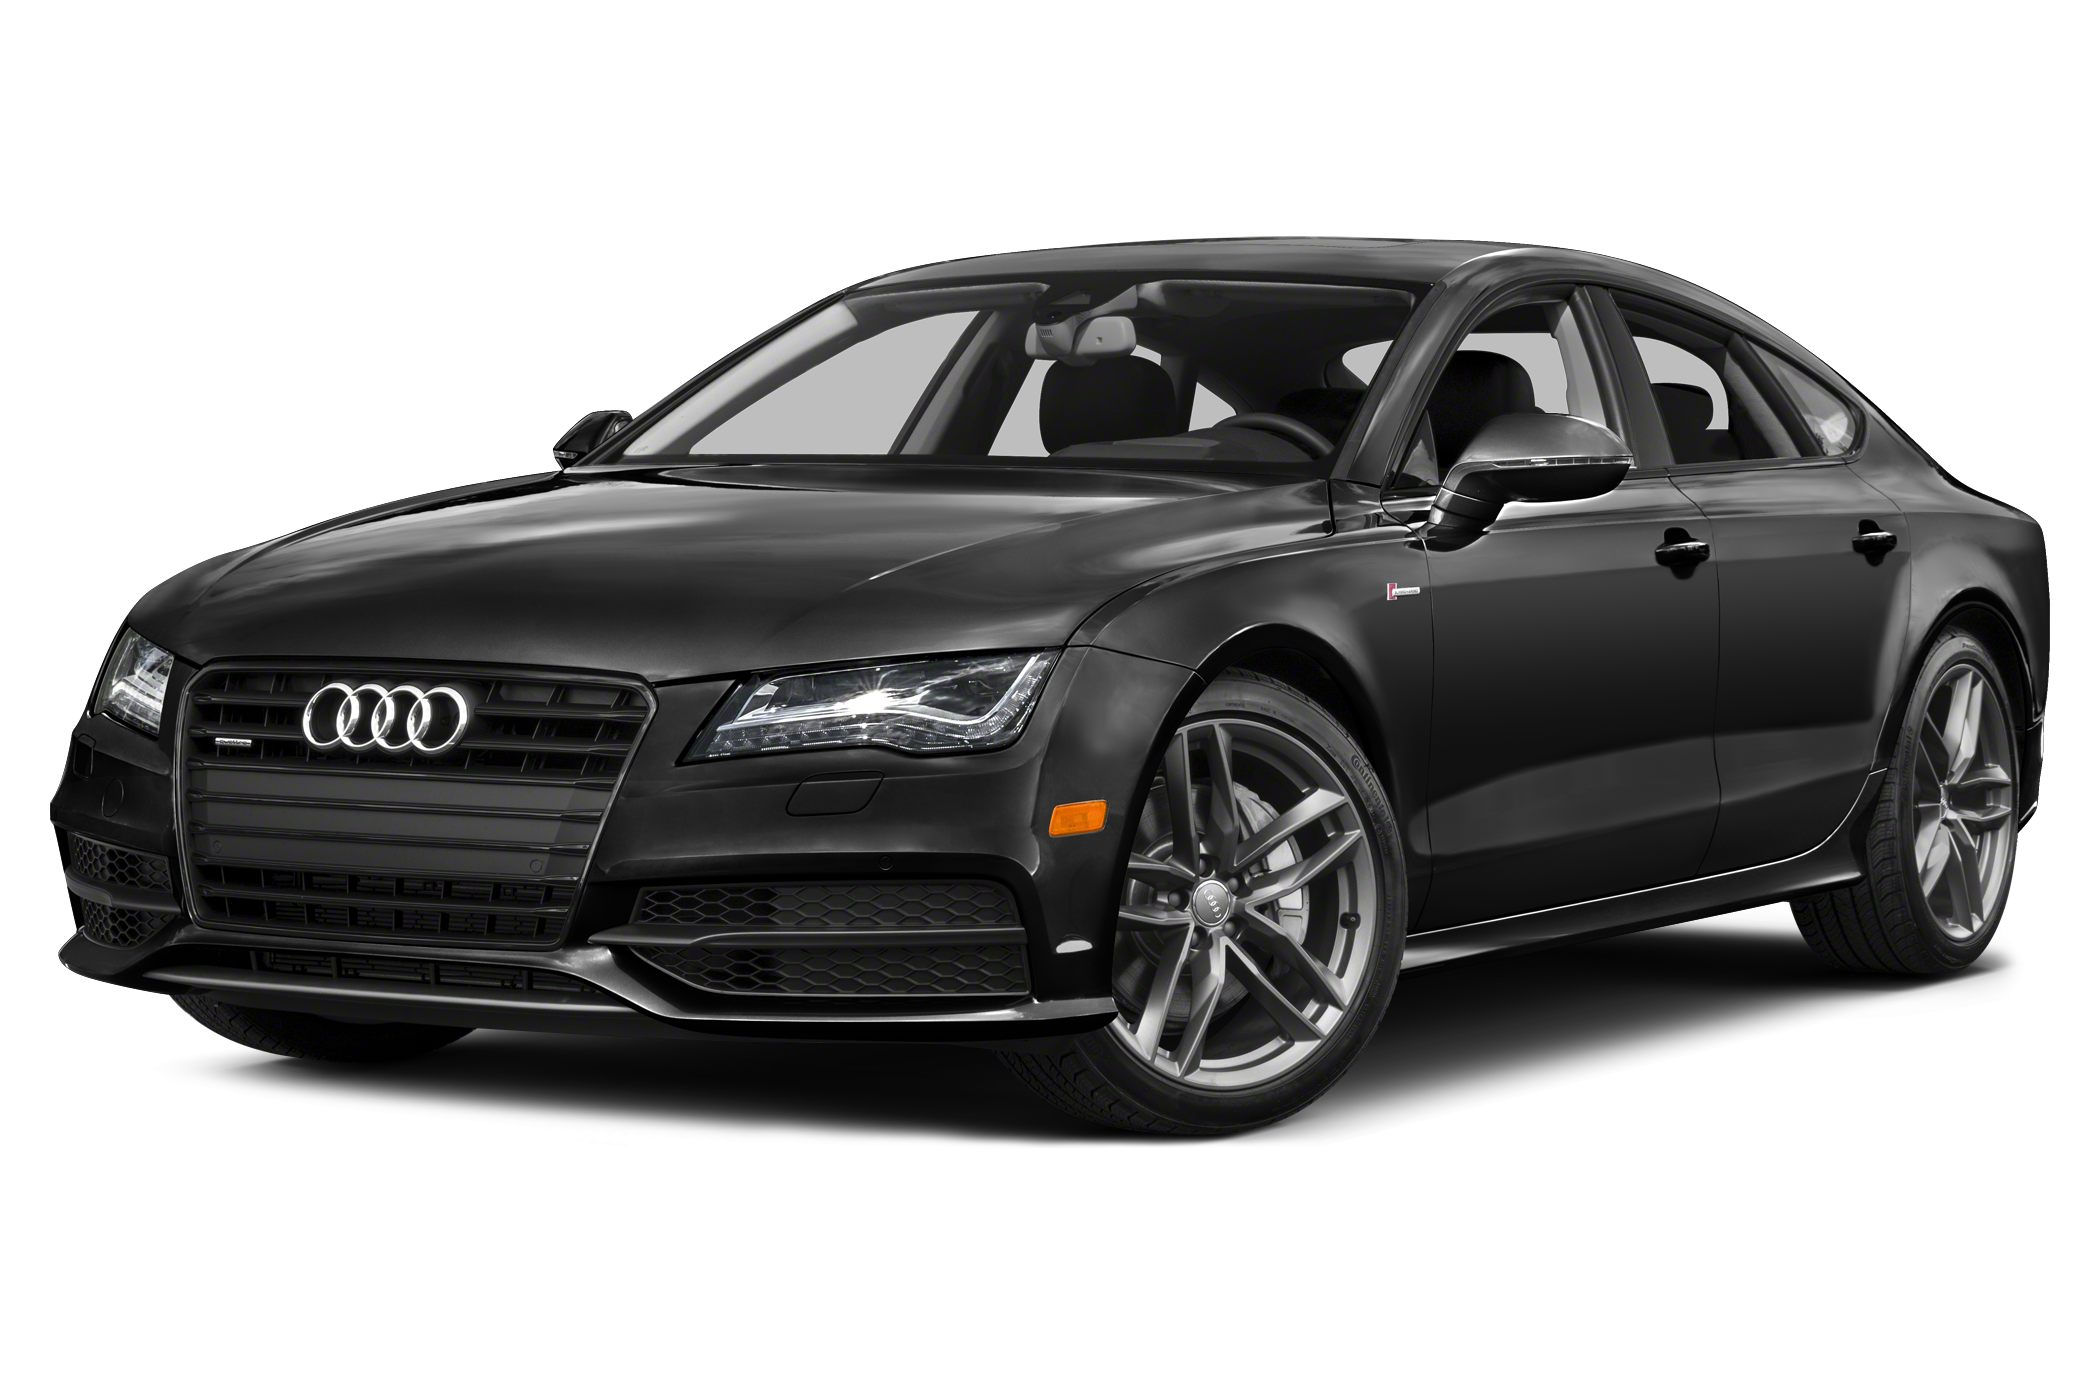 2015 Audi A7 3.0T Premium Plus Hatchback for sale in Huntington Station for $72,505 with 13 miles